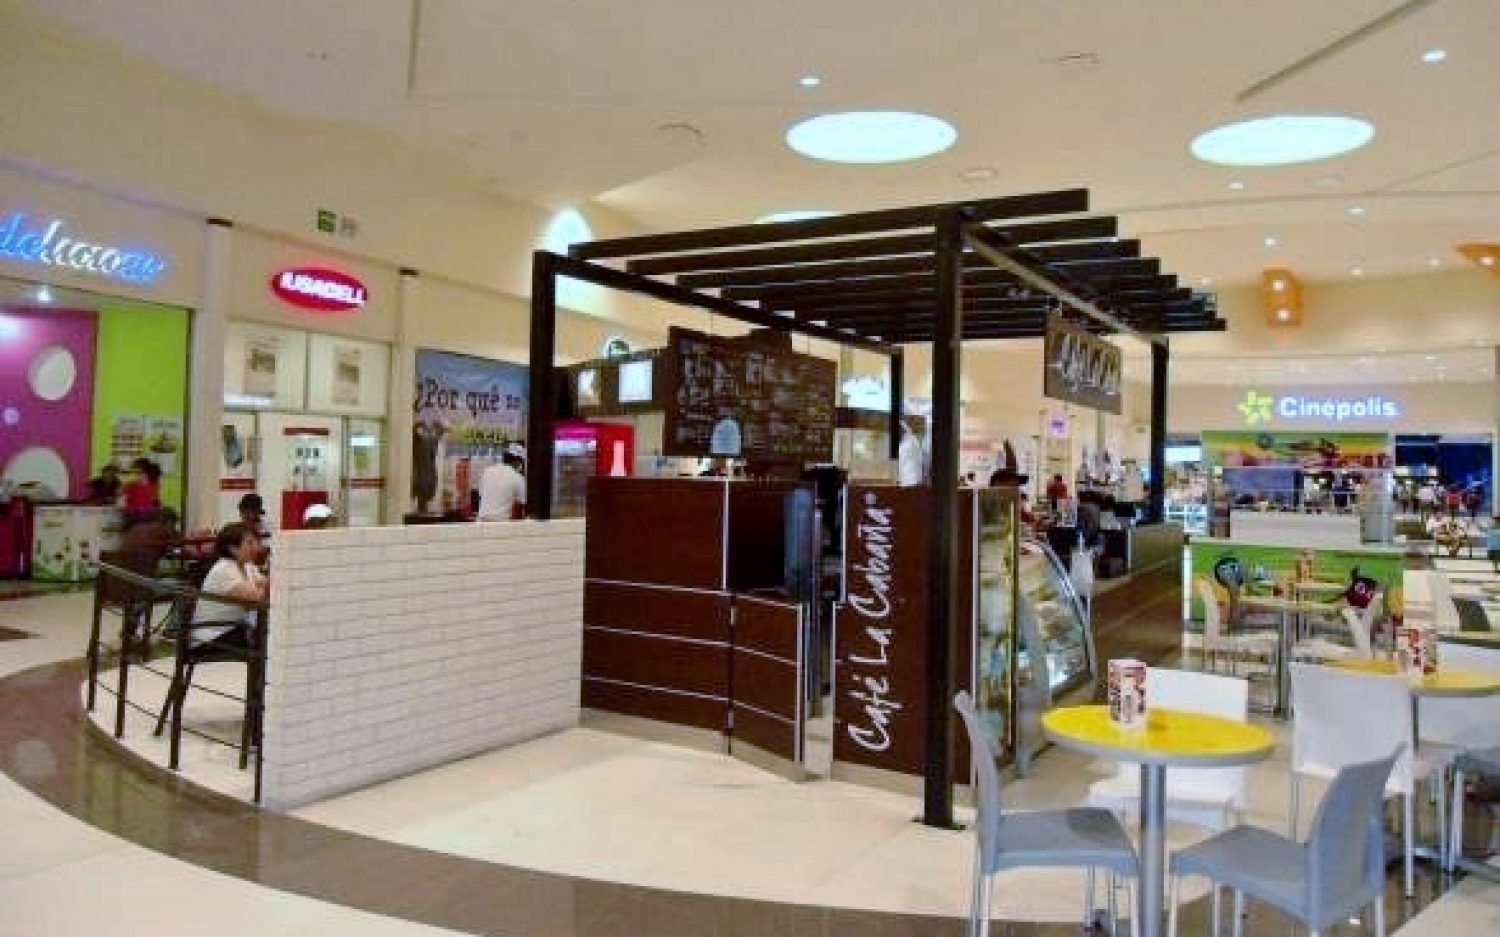 Co-Plaza Sendero Villahermosa (29)